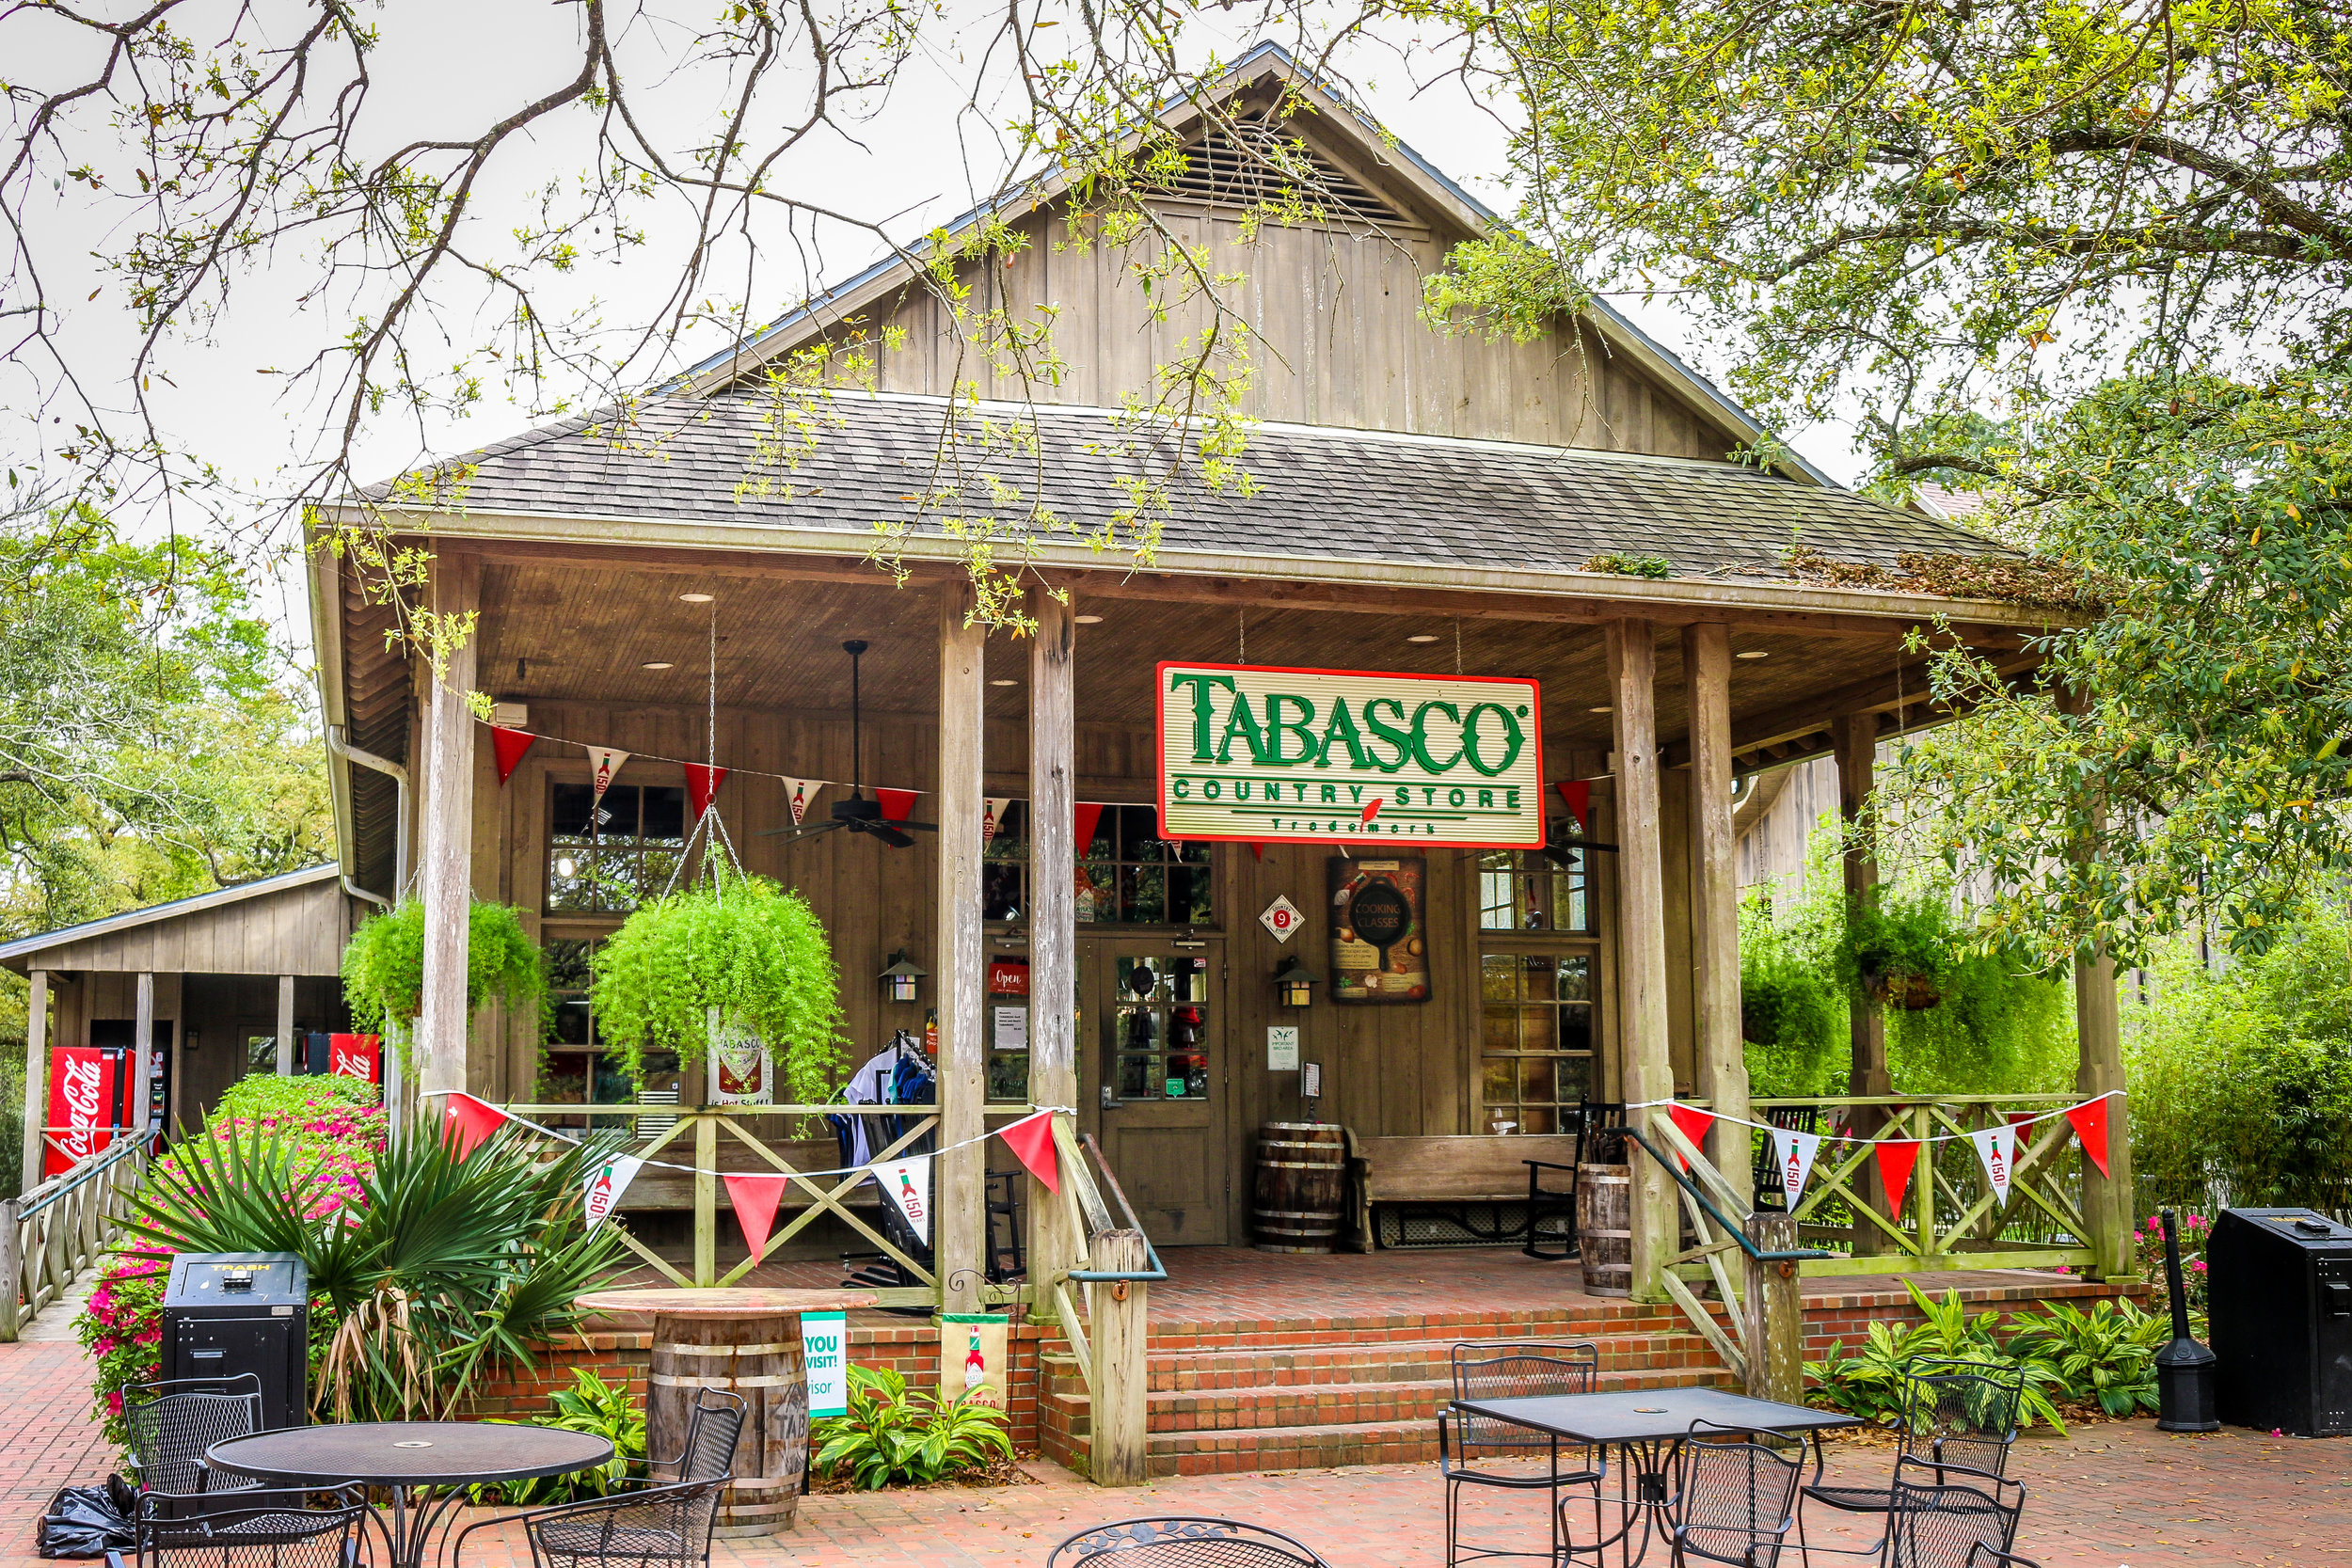 Tabasco Tour on Avery Island